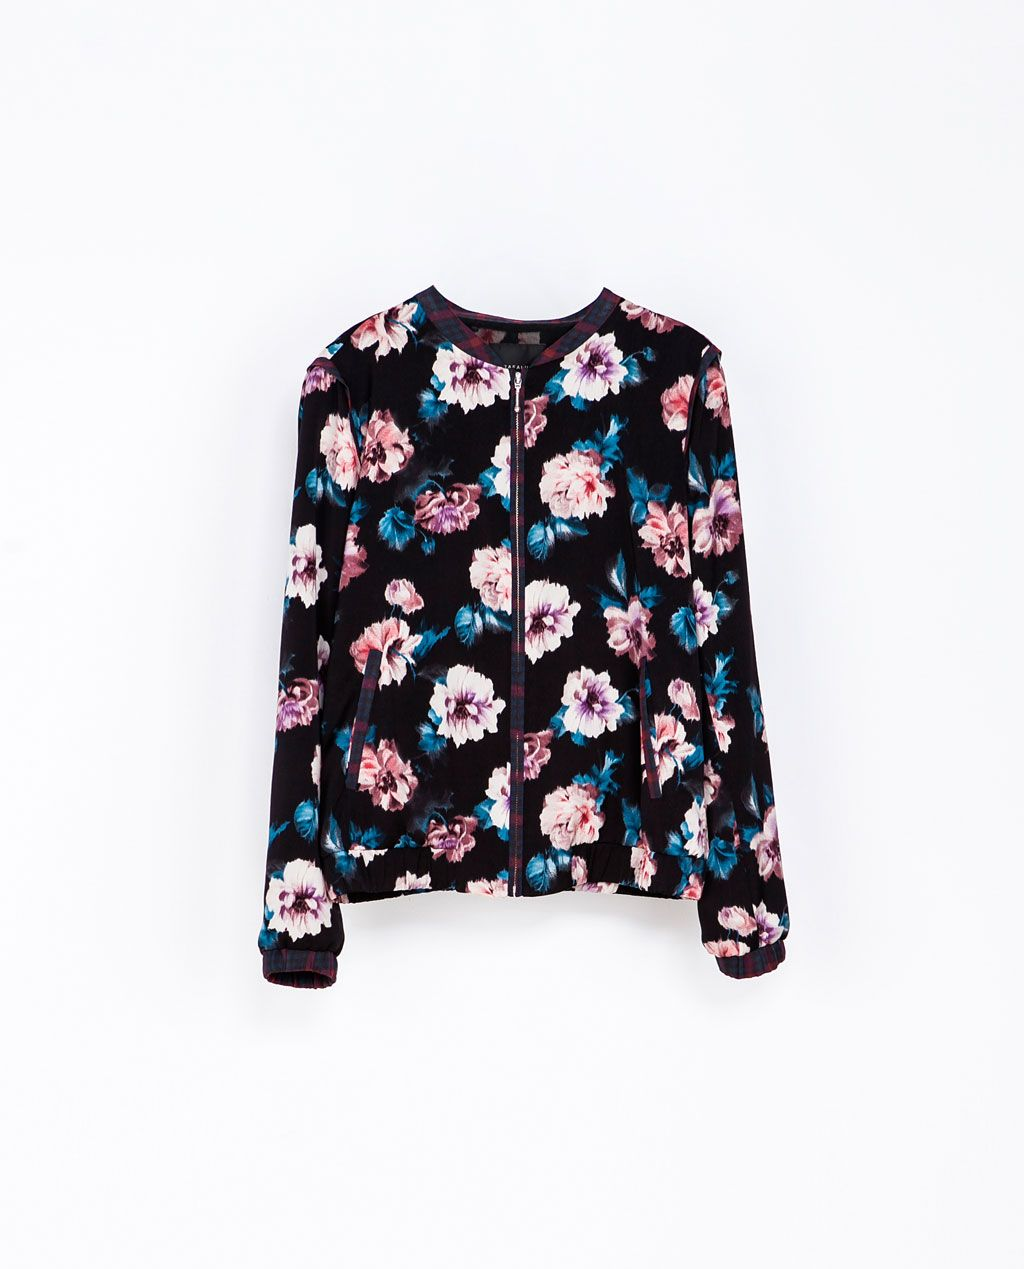 FLORAL PRINT JACKET from Zara trf